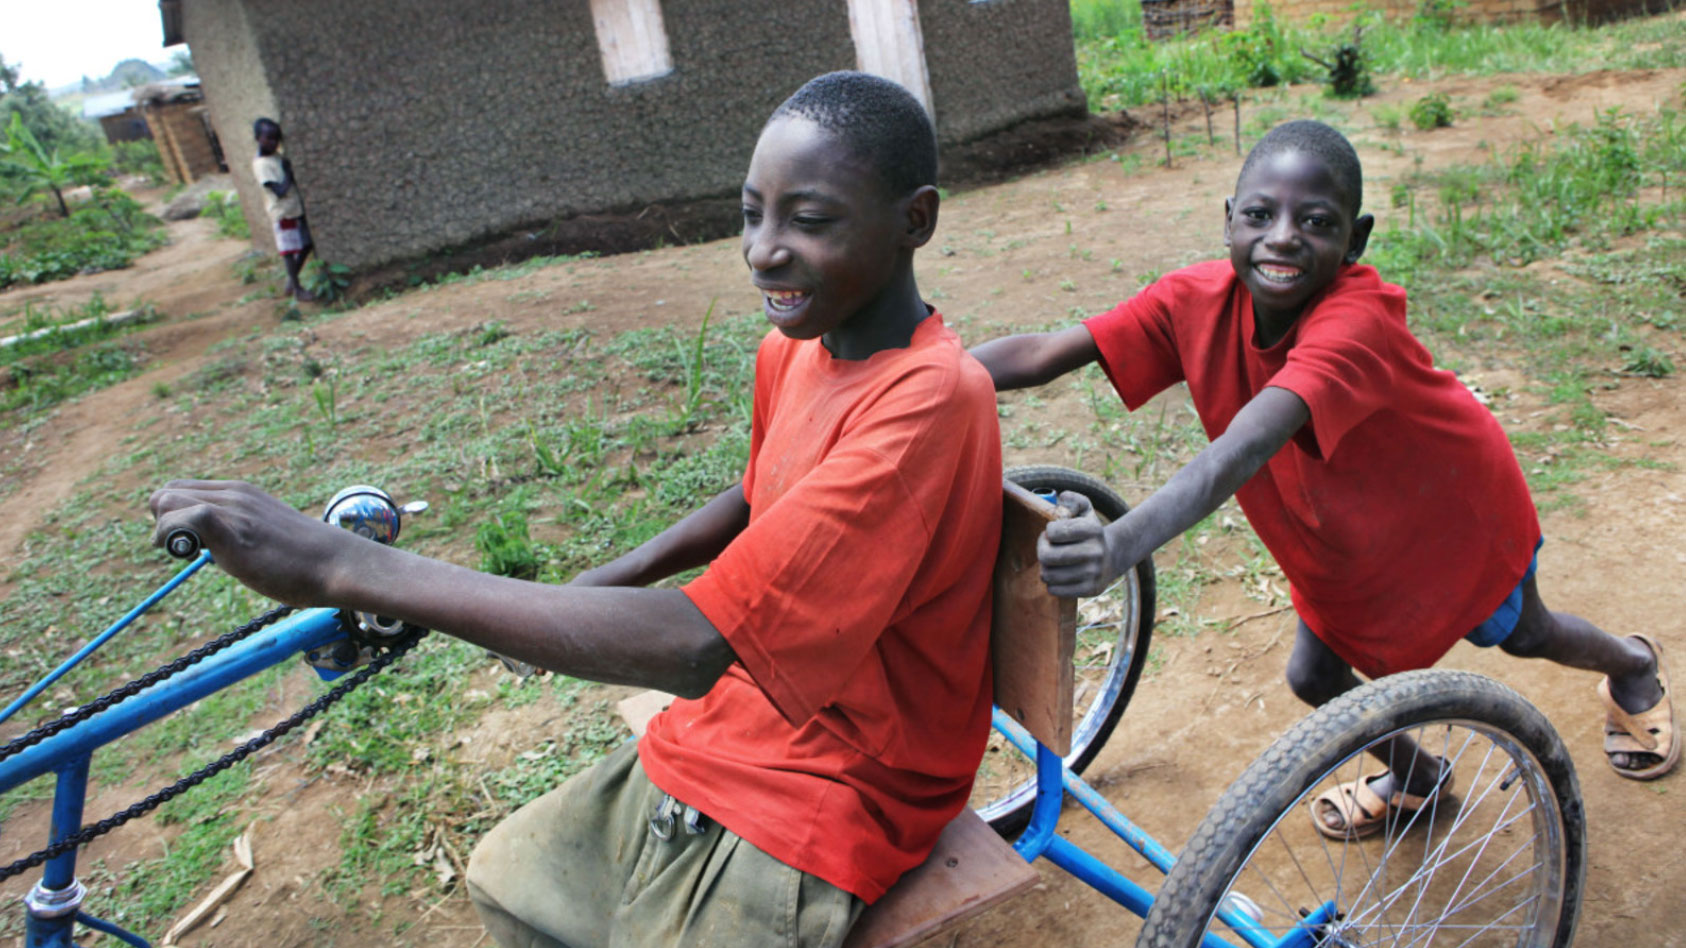 two-boys-playing-on-a-bike-in-Tanzania